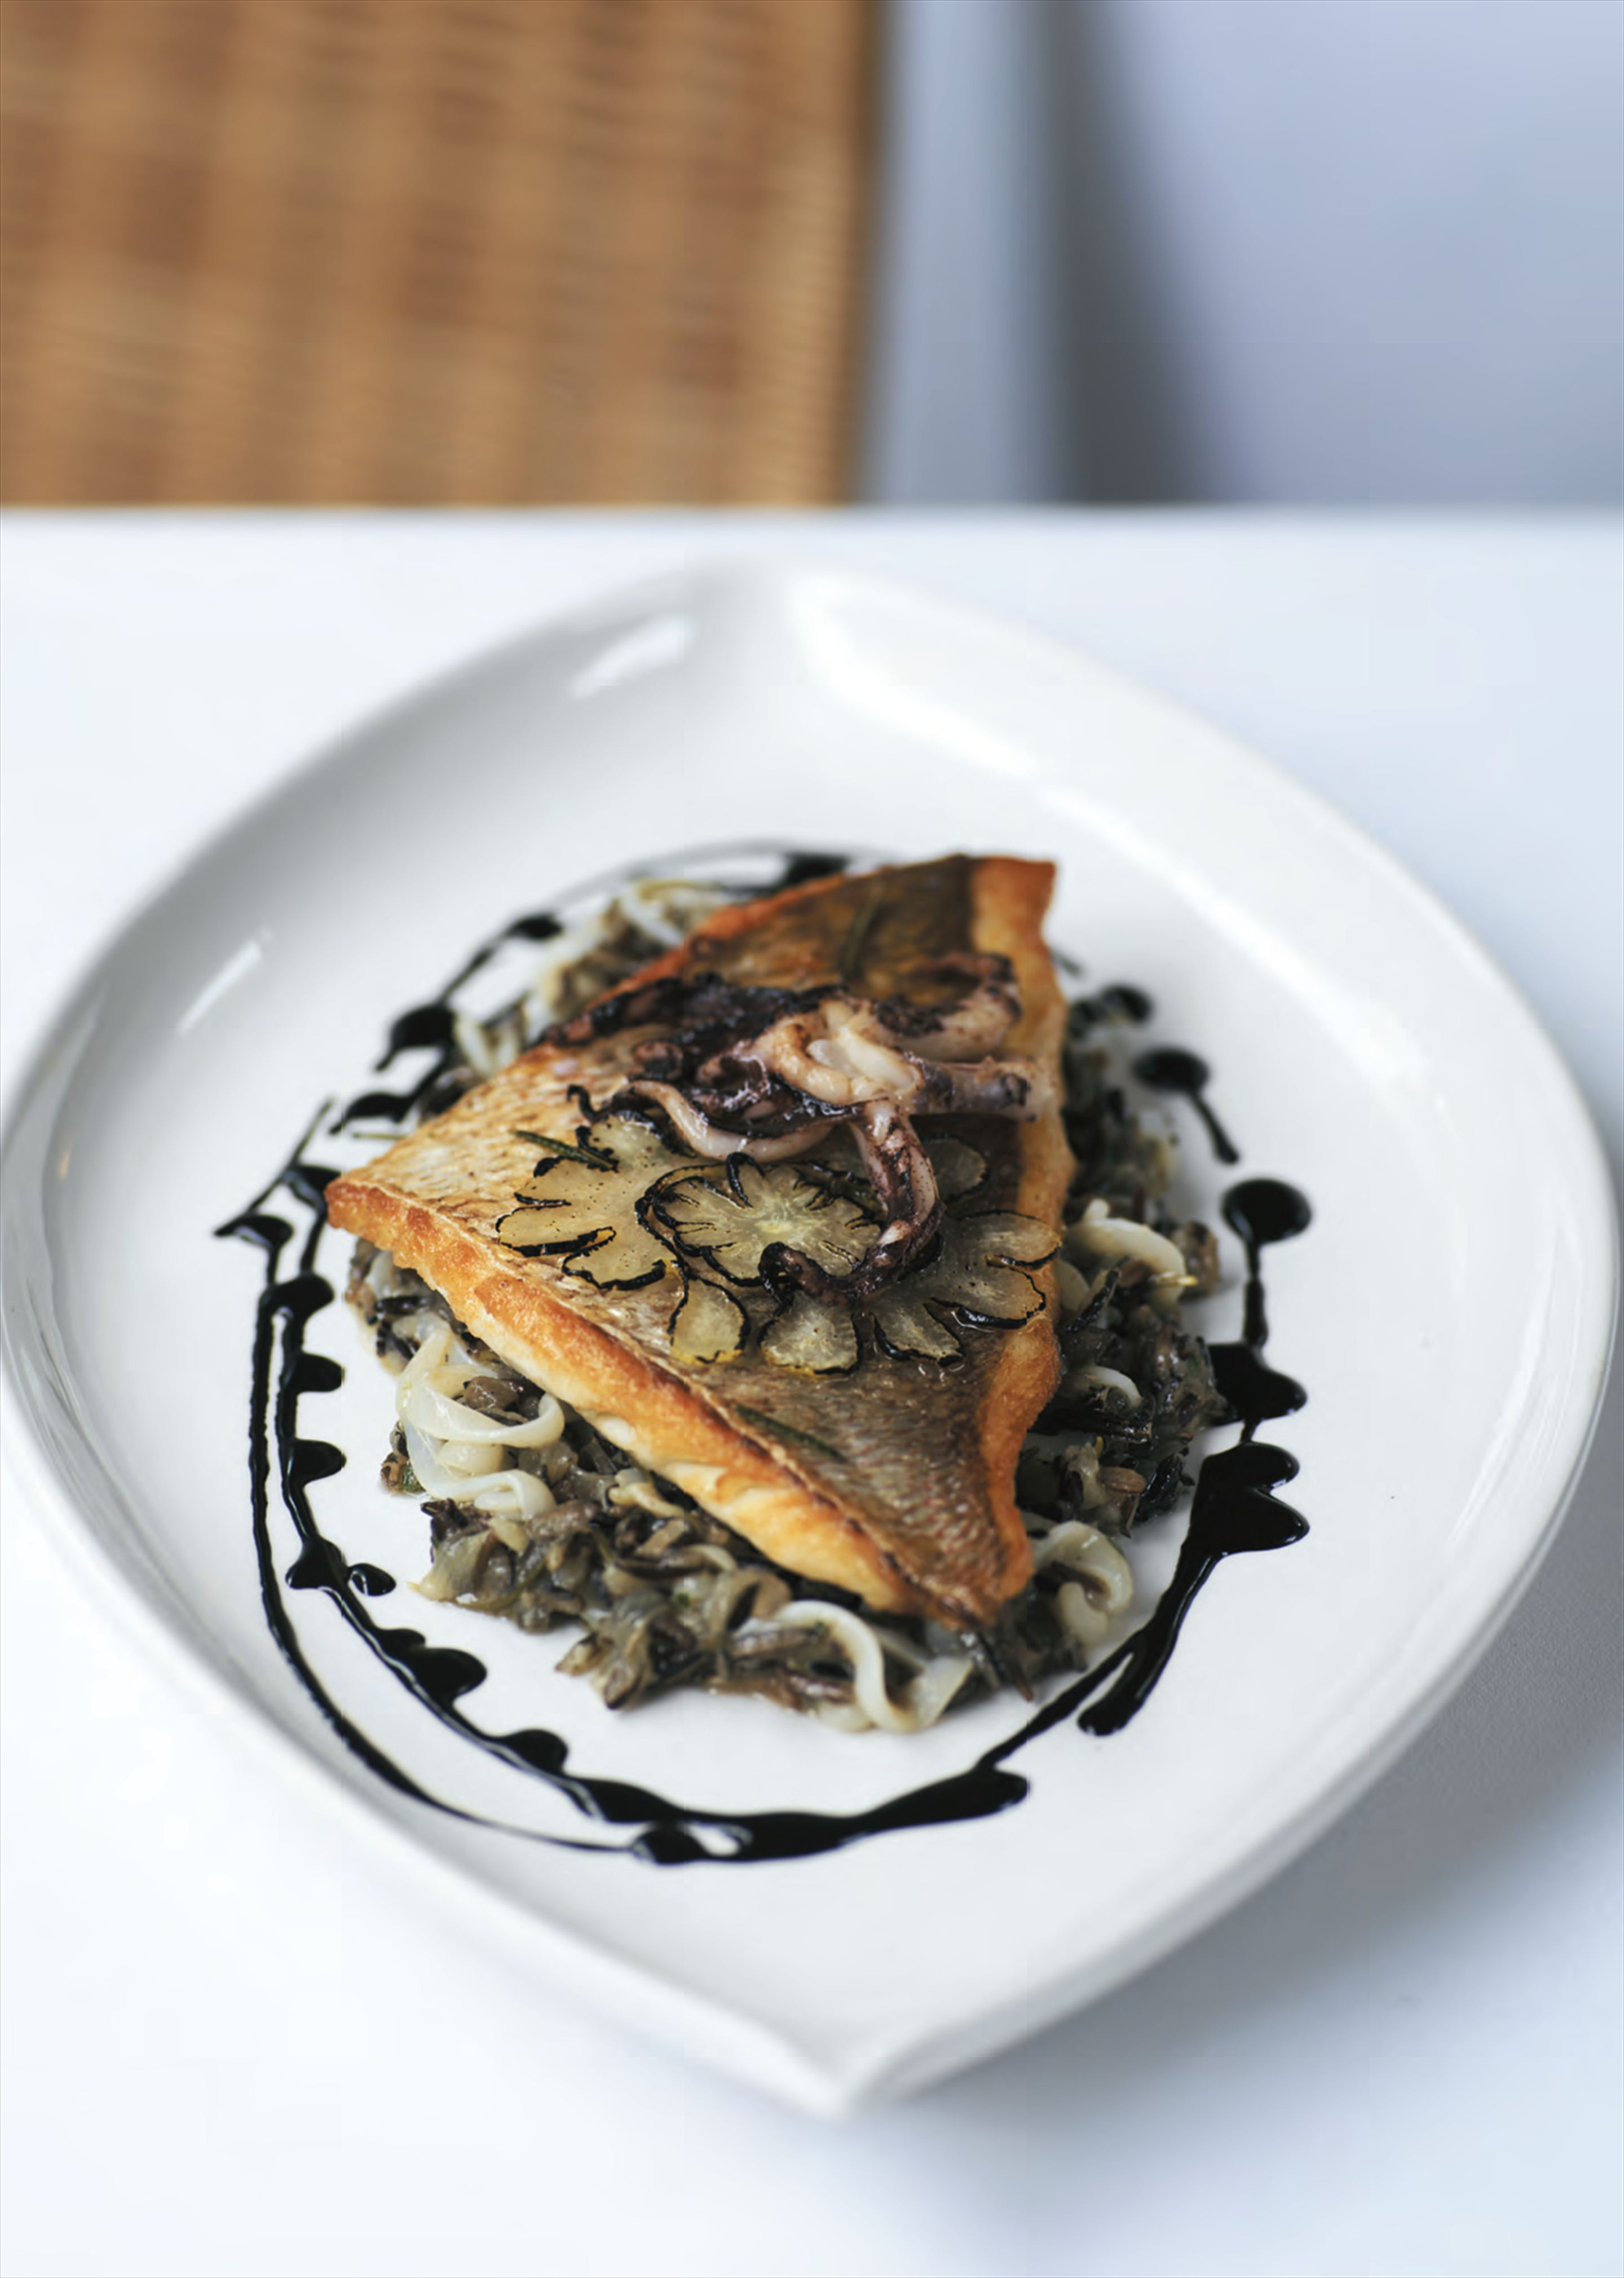 Roasted snapper with braised wild rice and calamari with ink sauce